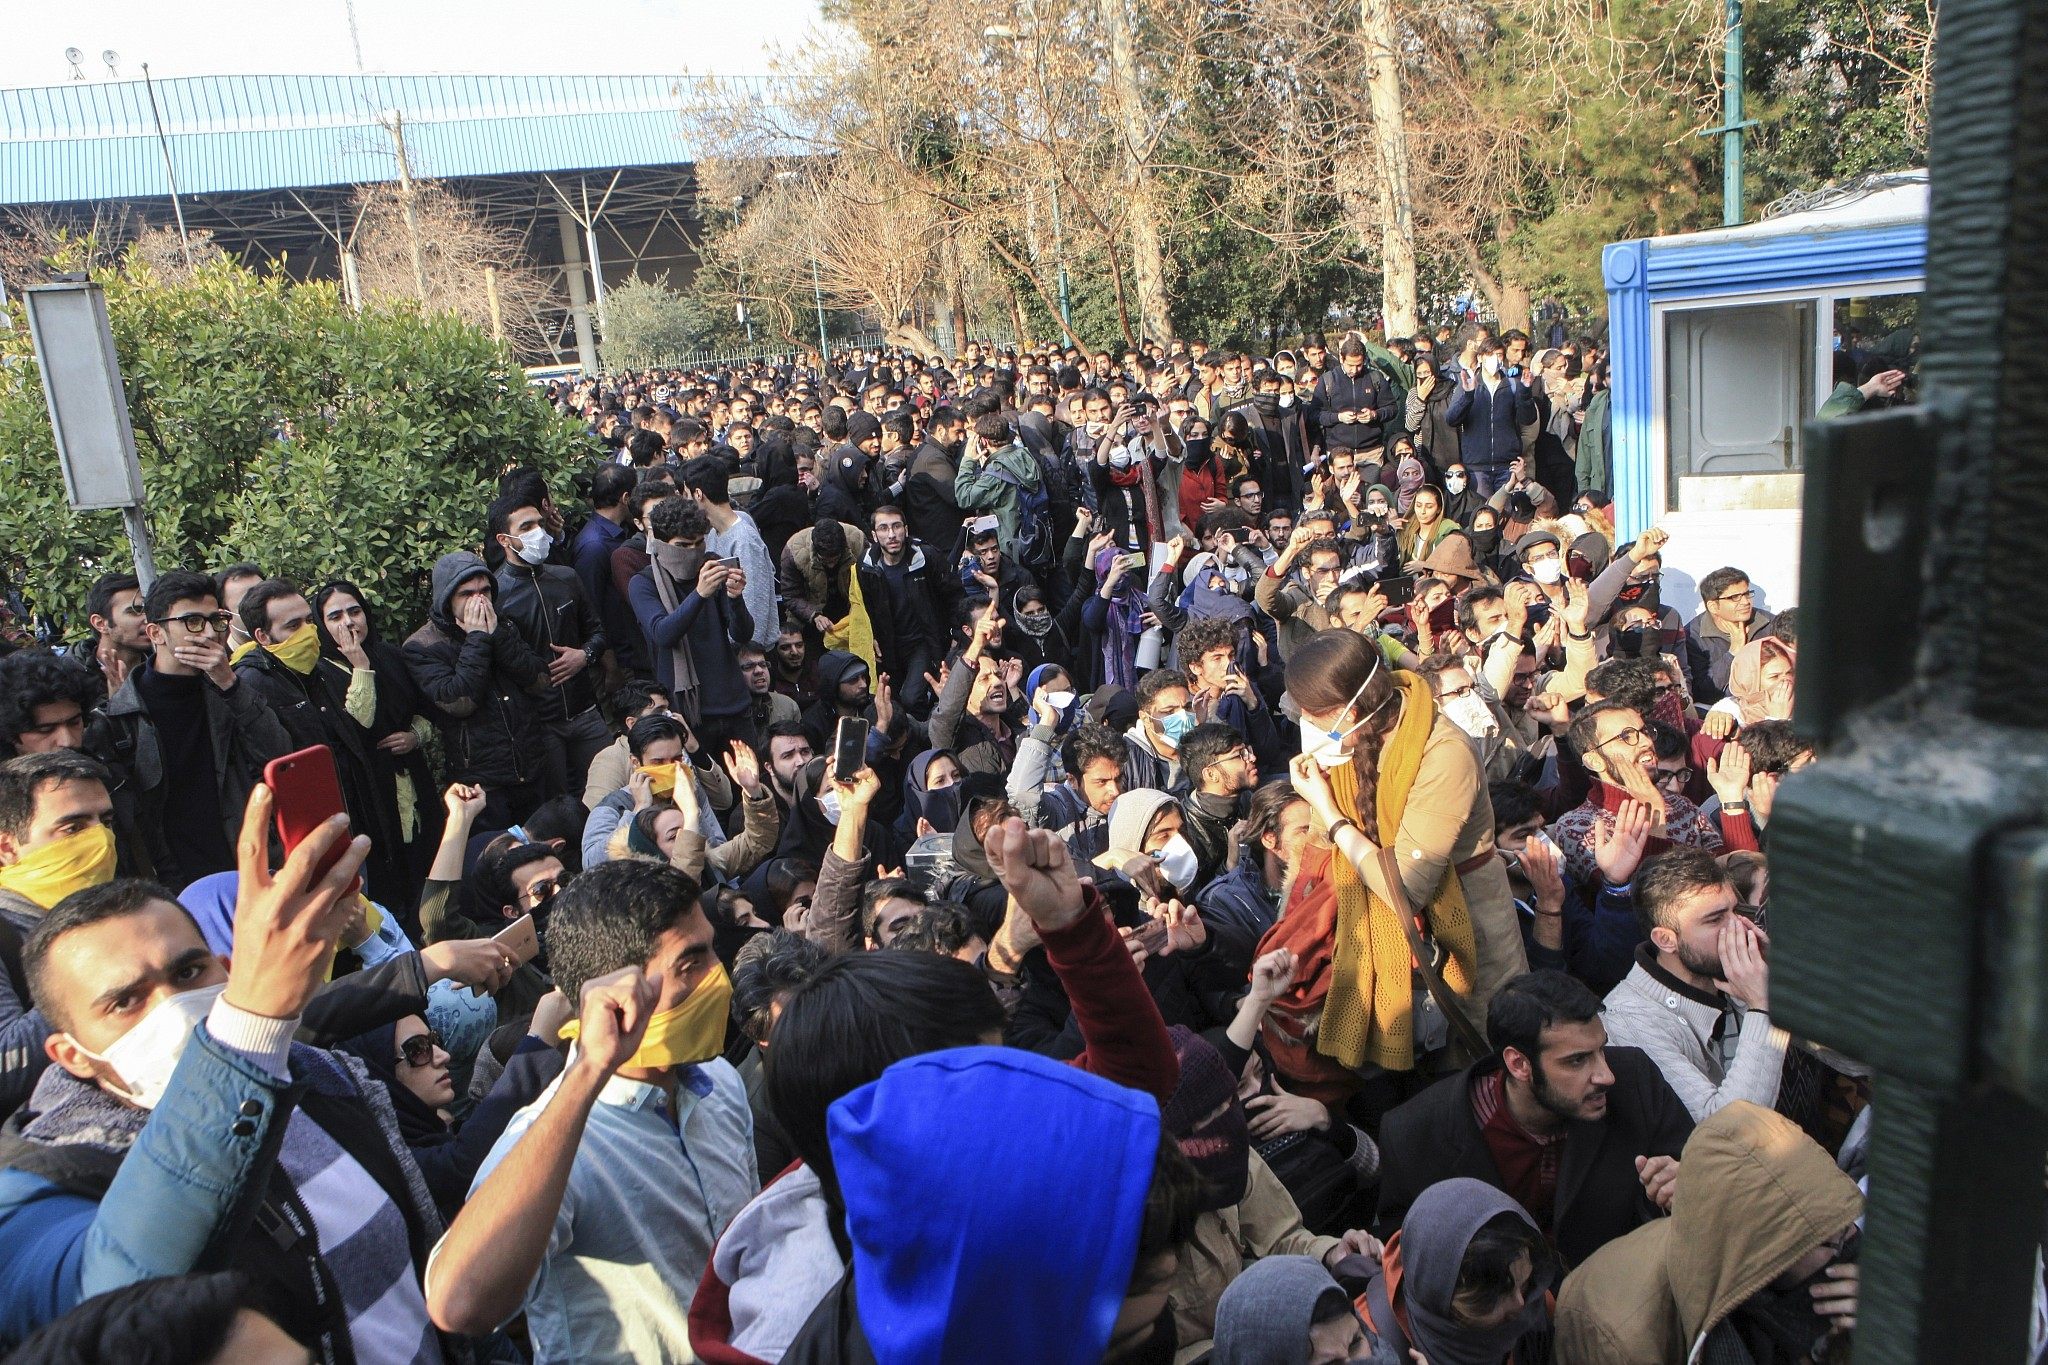 Iran warns protesters will 'pay the price'